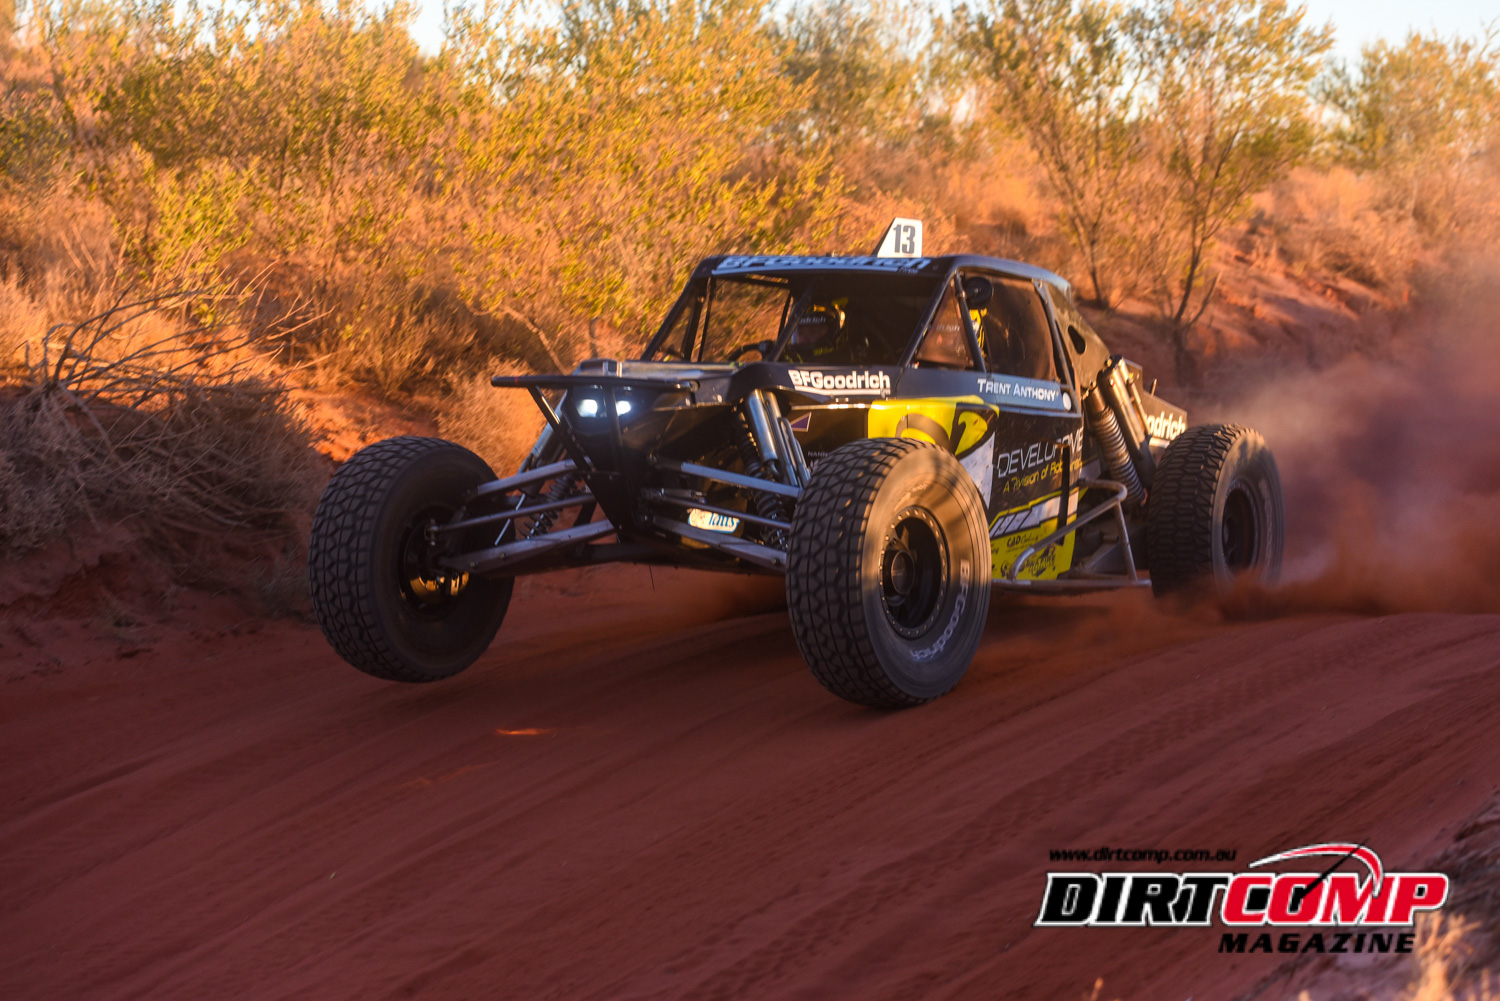 Robinson will lead the pack home from Finke on Monday morning in the #13 OBR Jimco